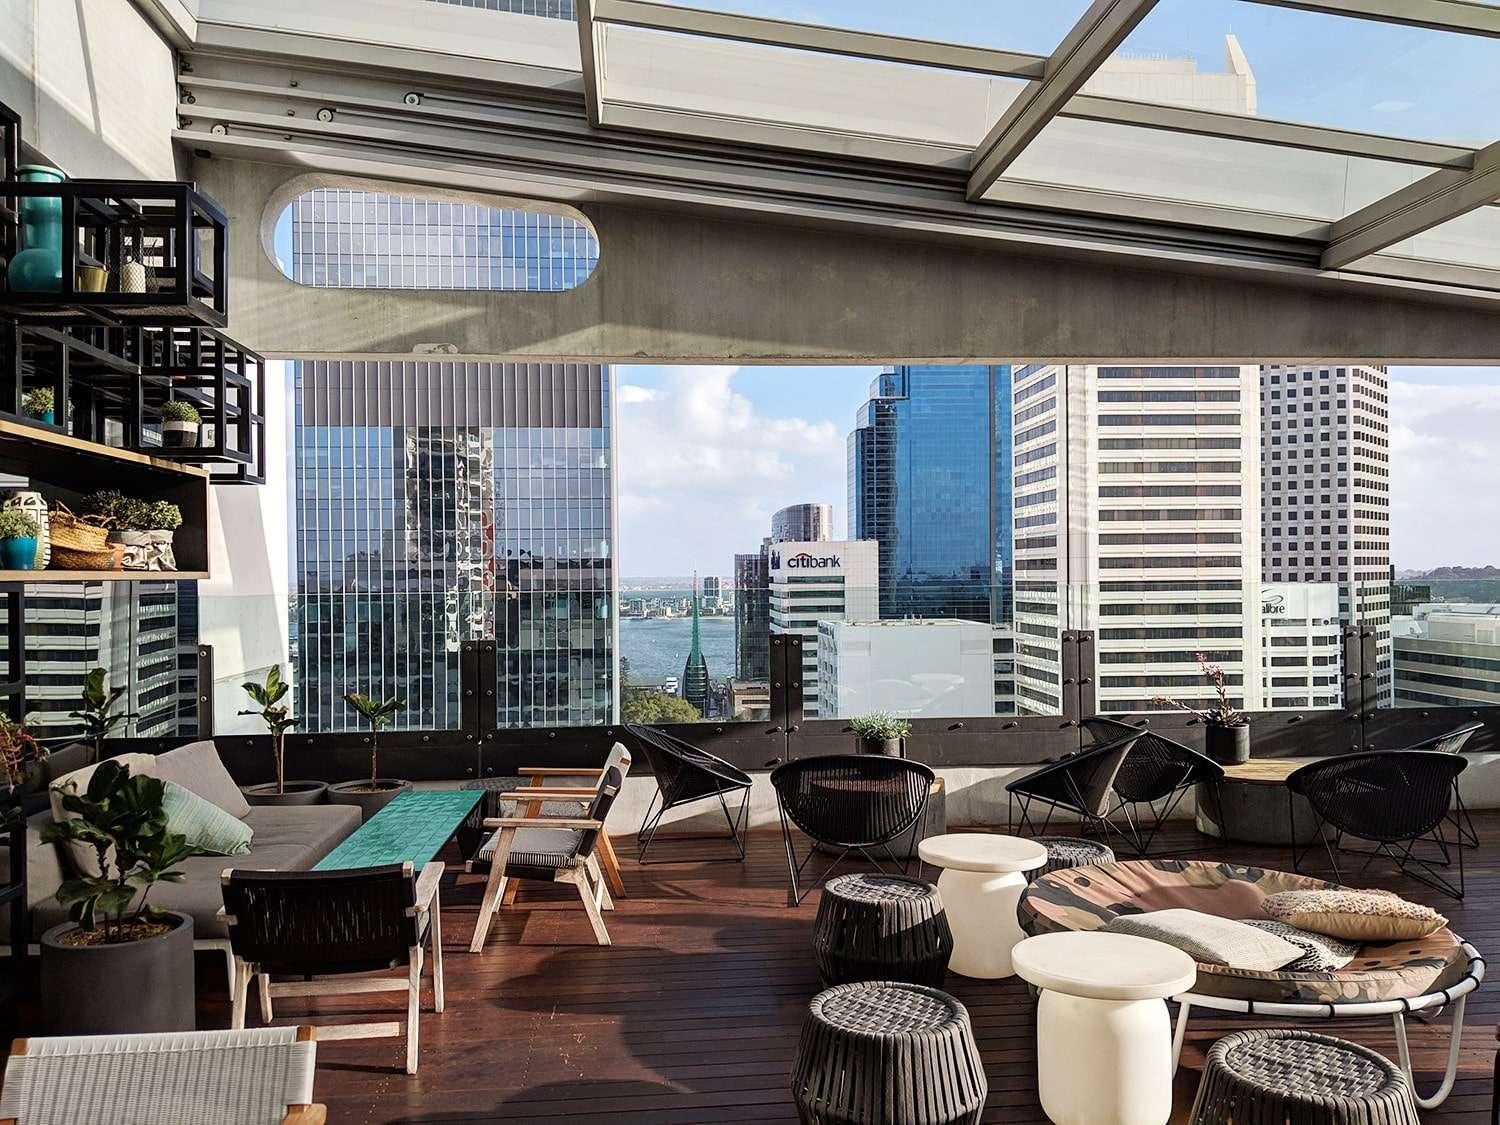 qt-hotel-perth-outdoor-bar-city-views